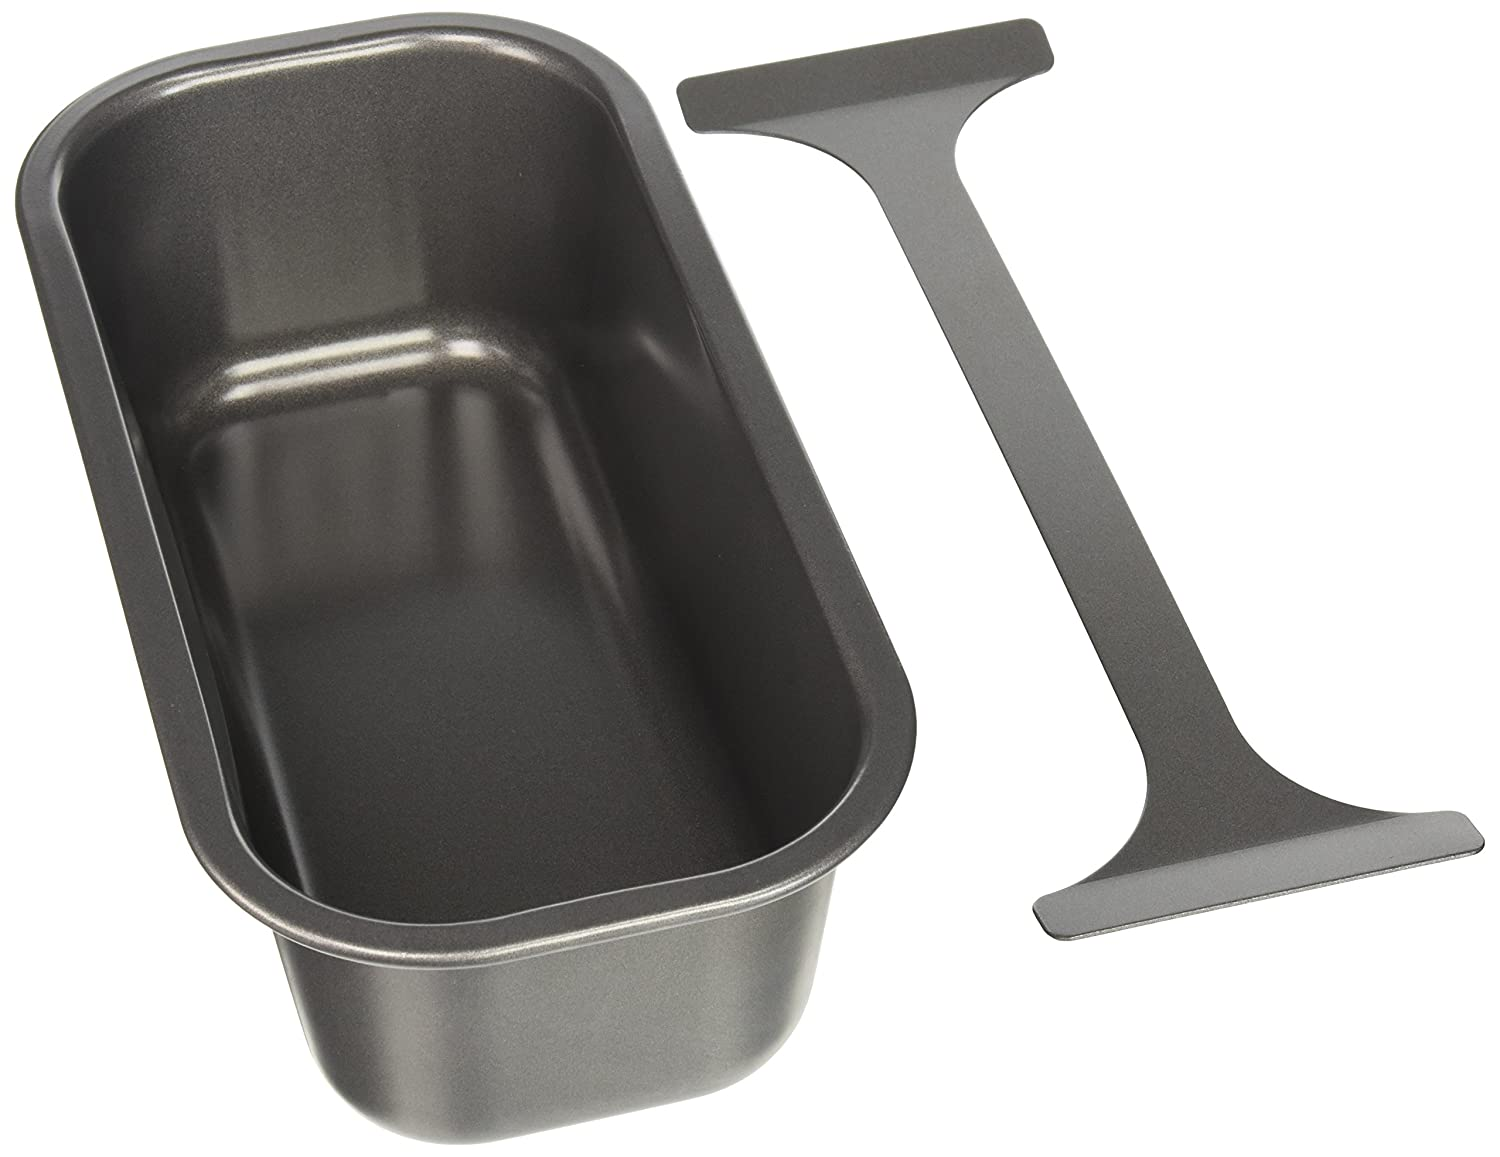 Nesco 4908-12-40PR 3-Piece Buffet Server Pans, fits any 18-Quart Nesco Roaster Oven